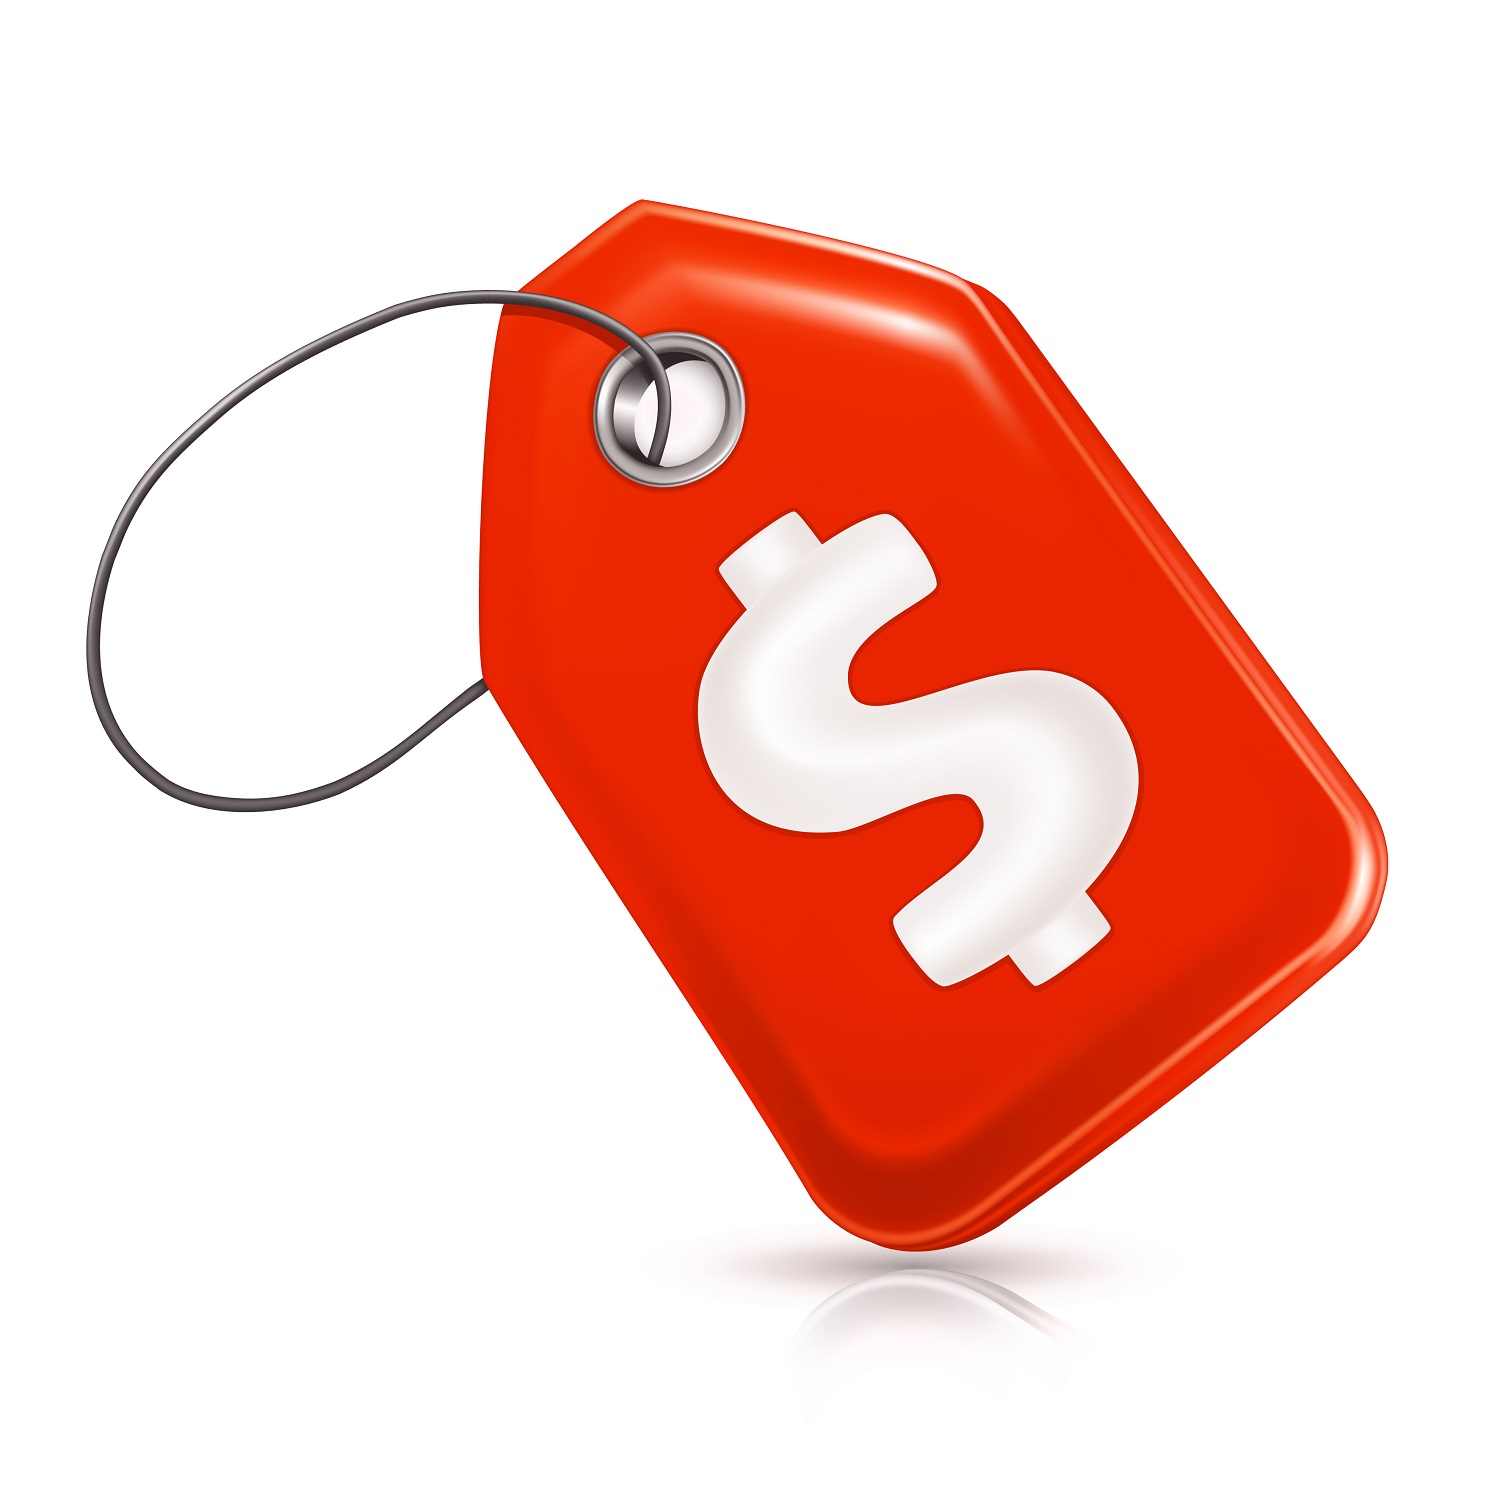 Price tag shutterstock 49629667 resized